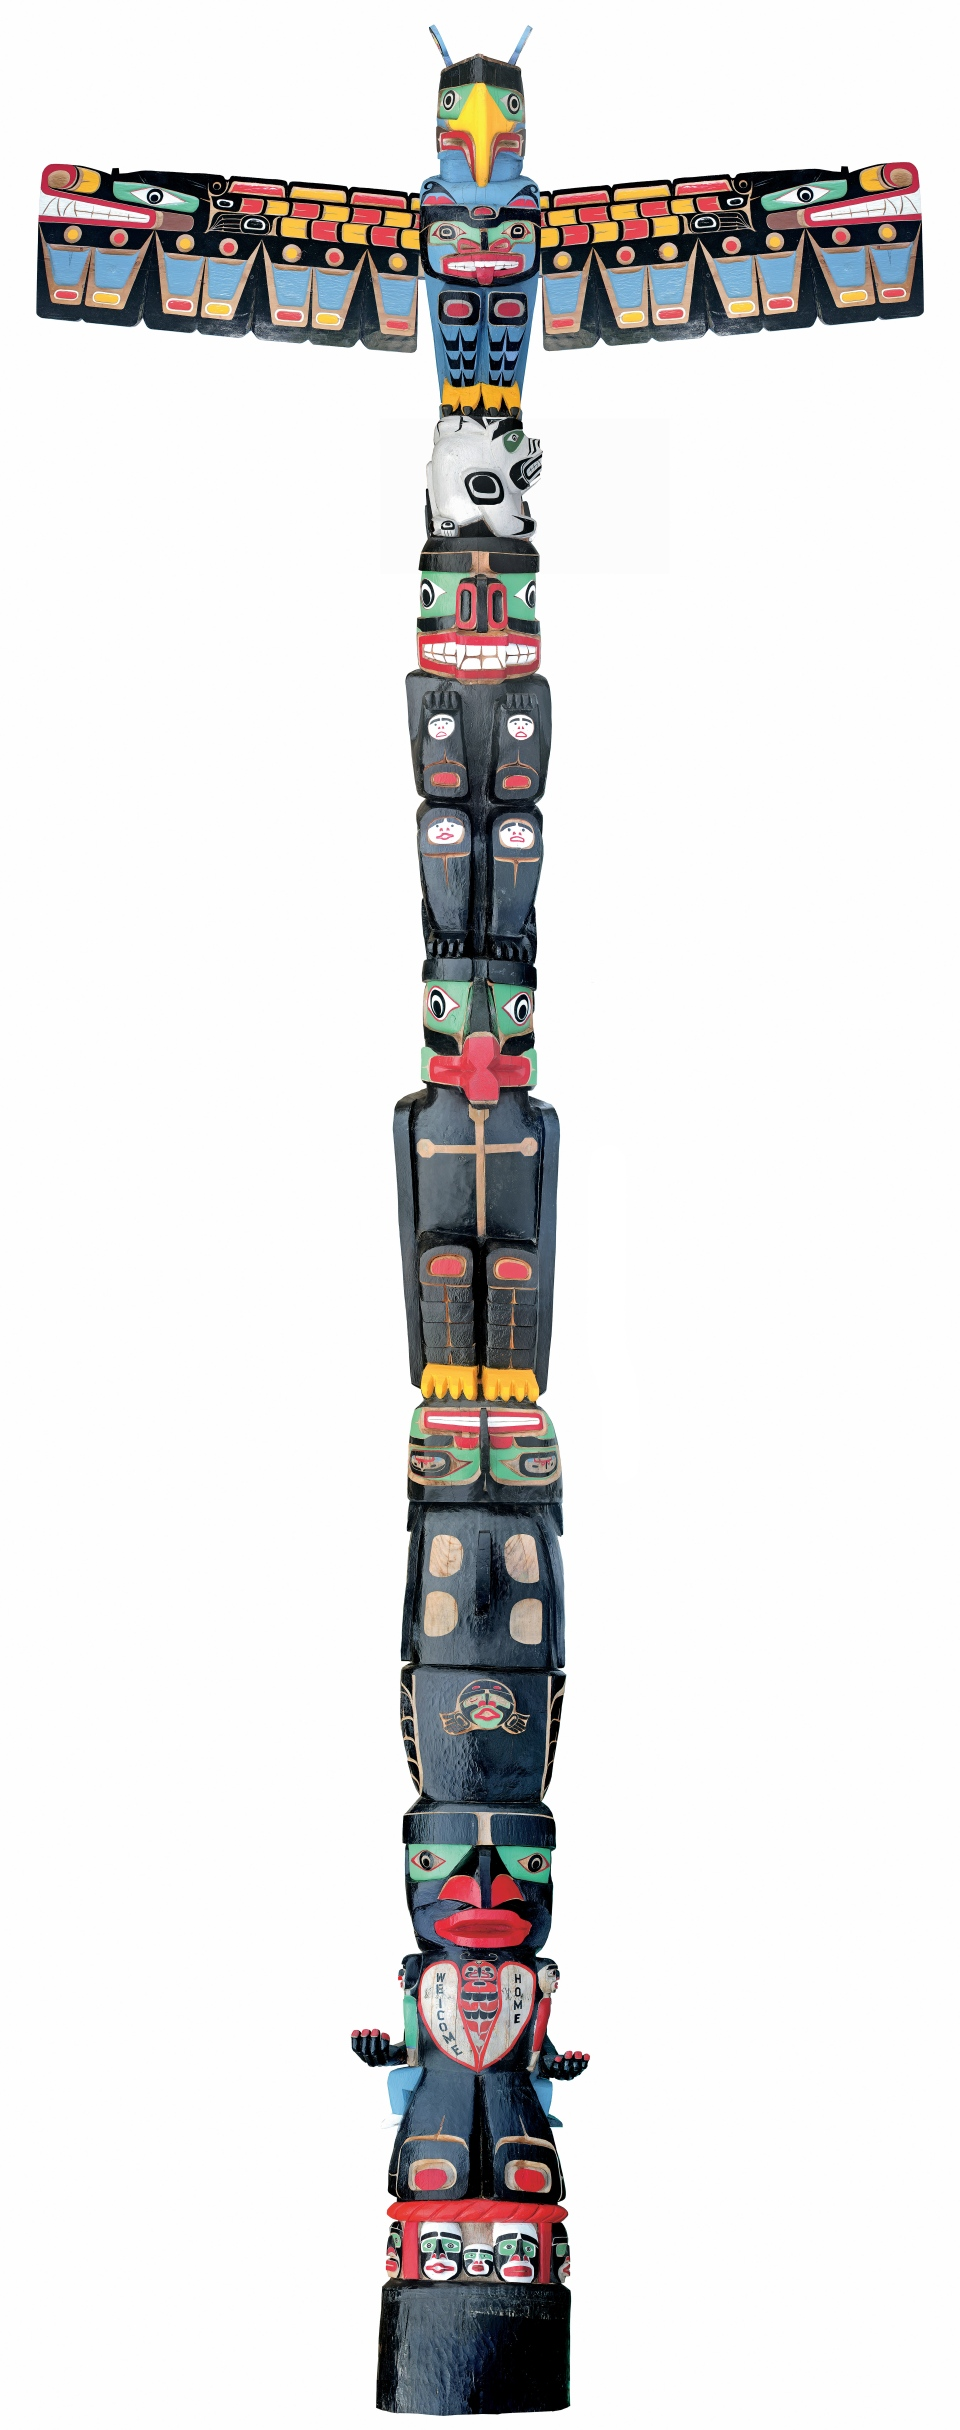 Charles Joseph's totem pole is seen in this image. (Montreal Museum of Fine Arts)